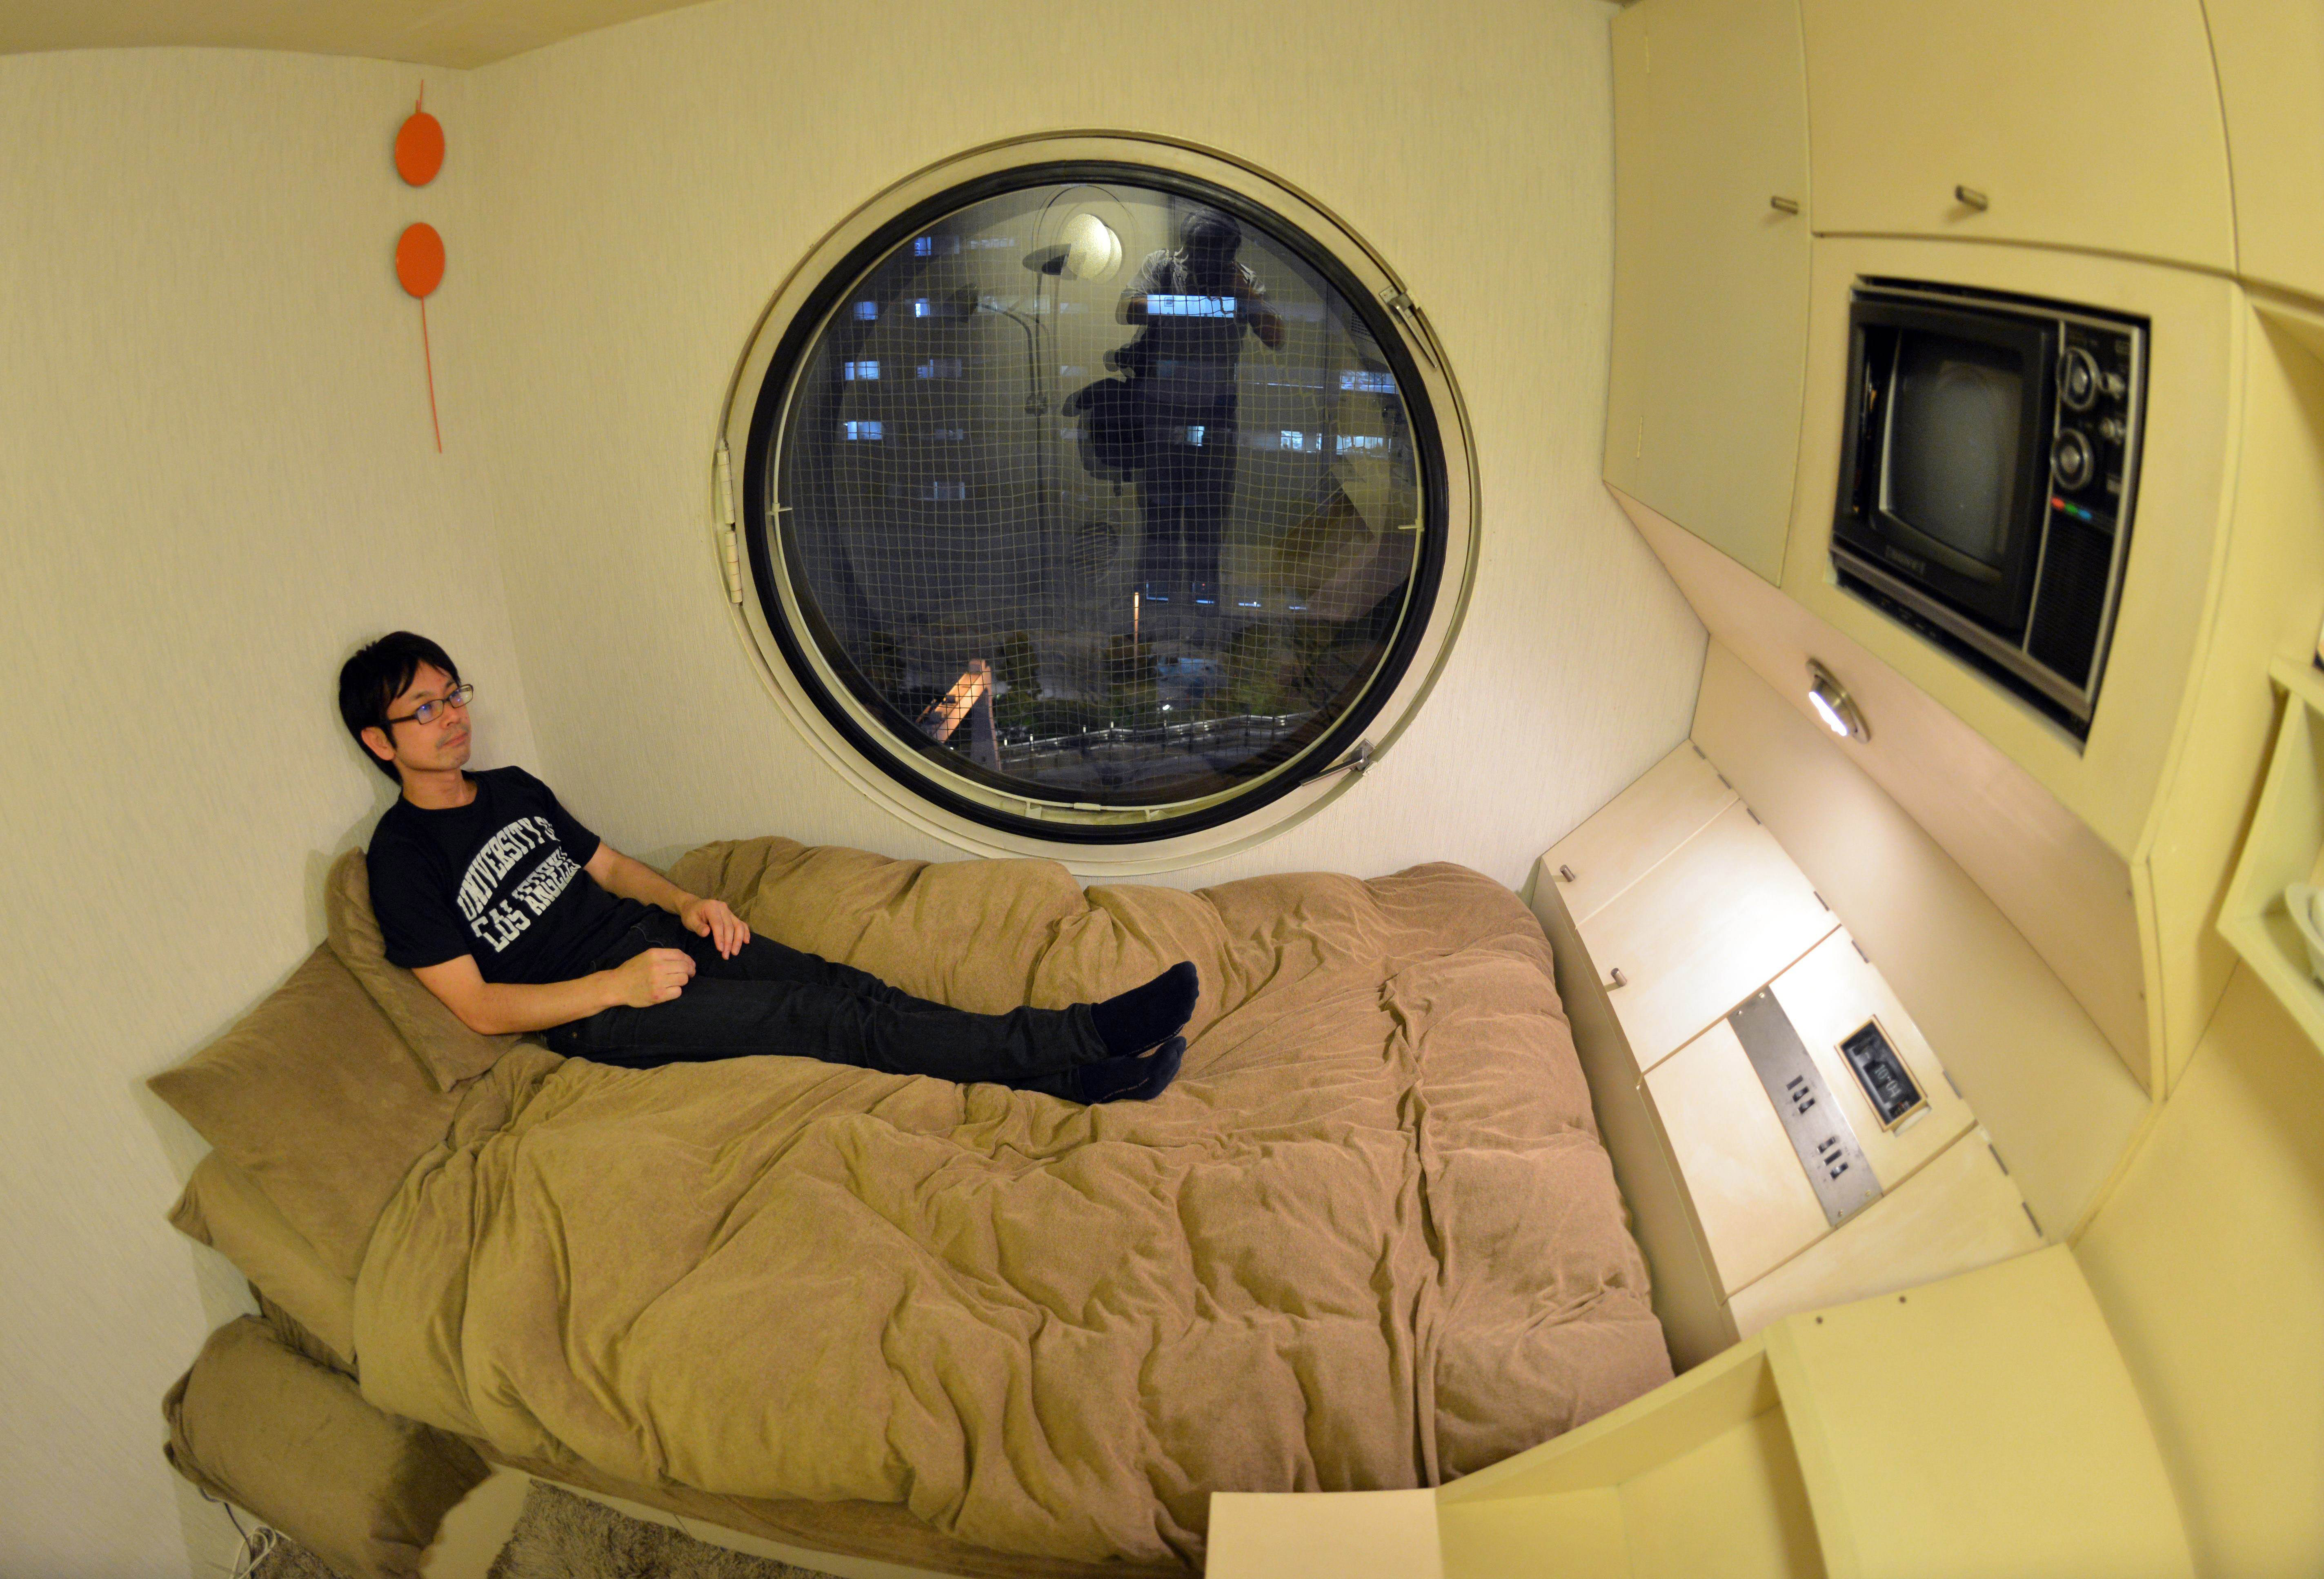 TO GO WITH STORY Japan-architecture-capsule-Nakagin,FEATURE by Katie Forster This picture taken on September 9, 2014 shows a resident of the Nakagin Capsule Tower Masato Abe at his room in Tokyo. The 140 units at Nakagin represent a special part of the history of architecture and one that is worth protecting against plans to tear it down. Around half of the capsules, designed by Japanese architect Kisho Kurokawa in 1972, are currently in use as offices, art studios and second homes, but 20 of the tiny spaces are full-time homes.   AFP PHOTO / Yoshikazu TSUNO